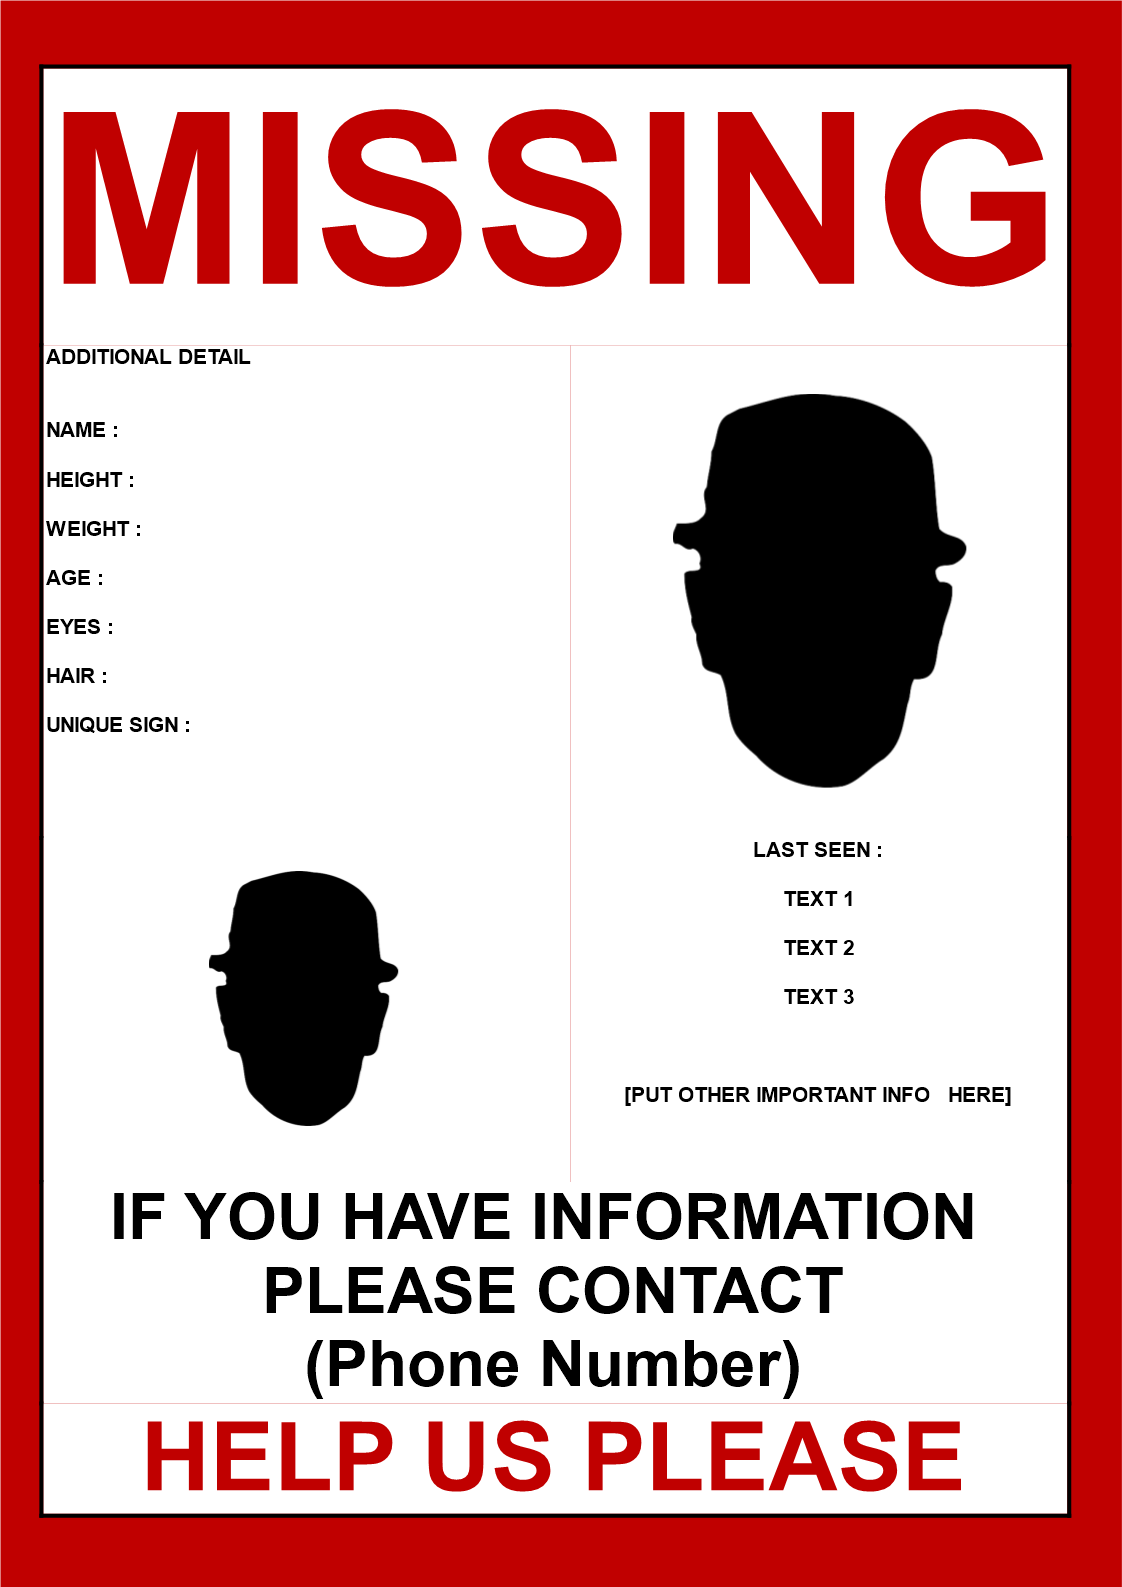 missing person poster template April.onthemarch.co